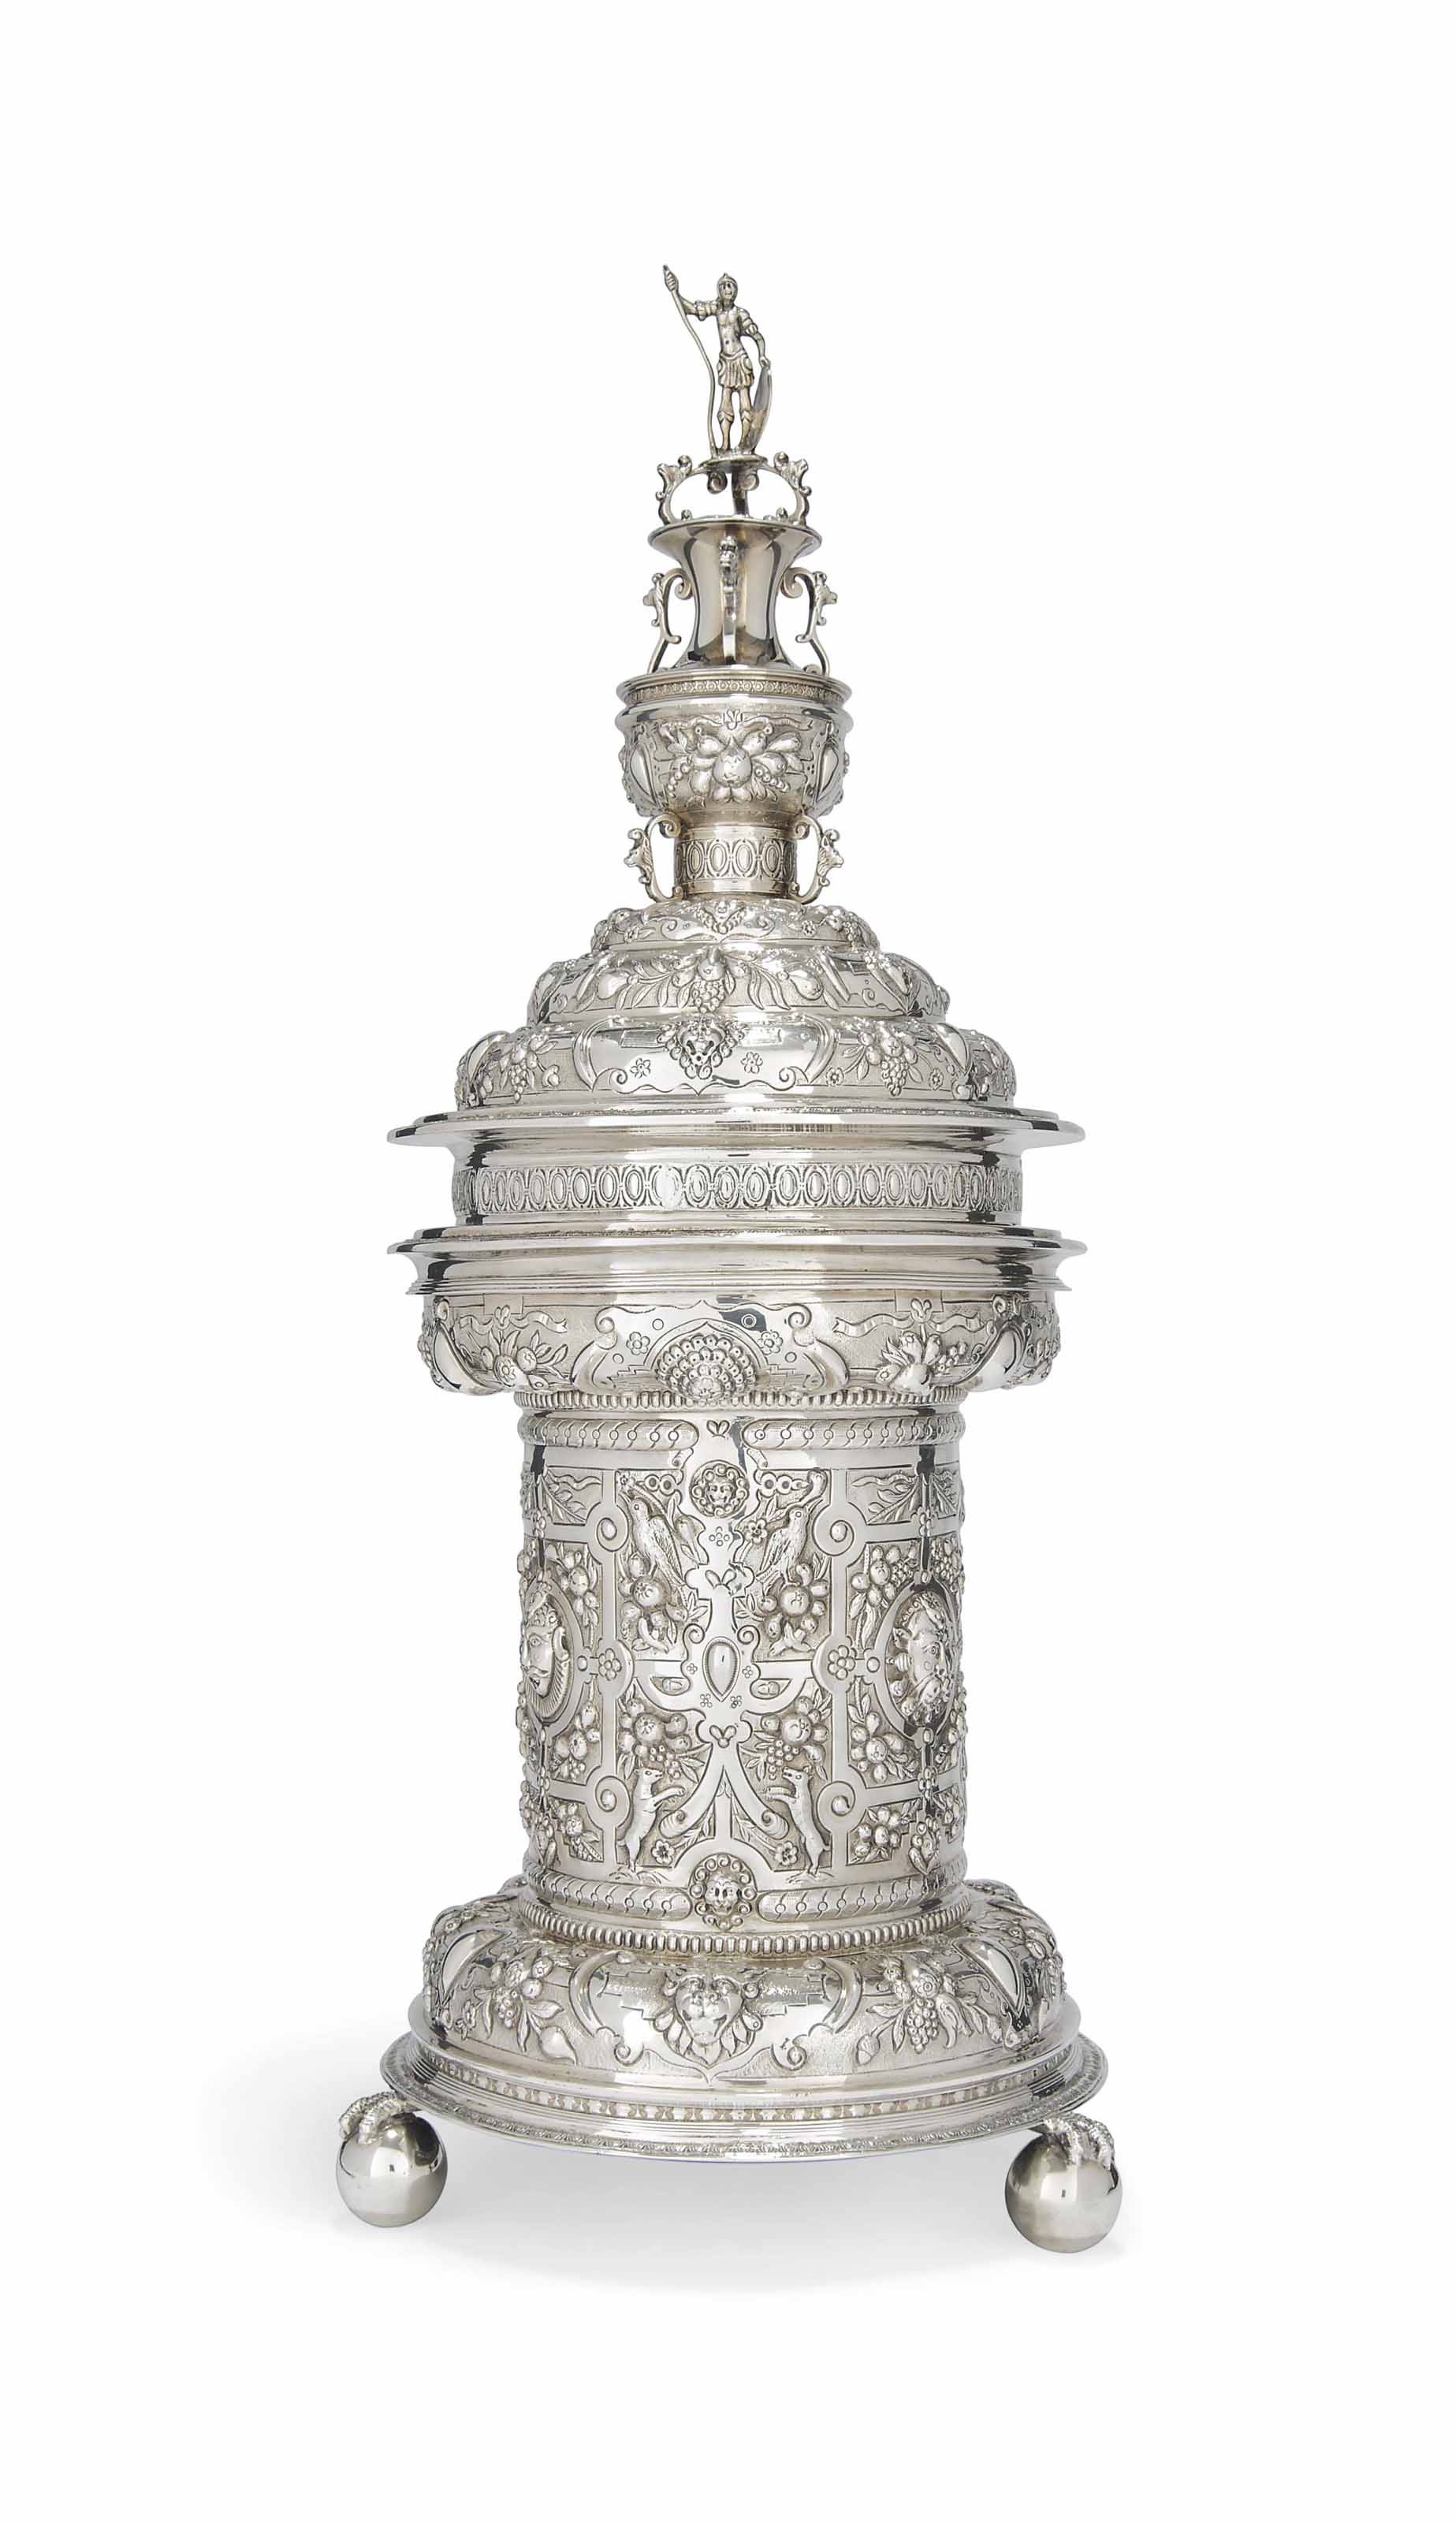 A FINE SILVER REPRODUCTION OF AN ELIZABETHAN STANDING SALT